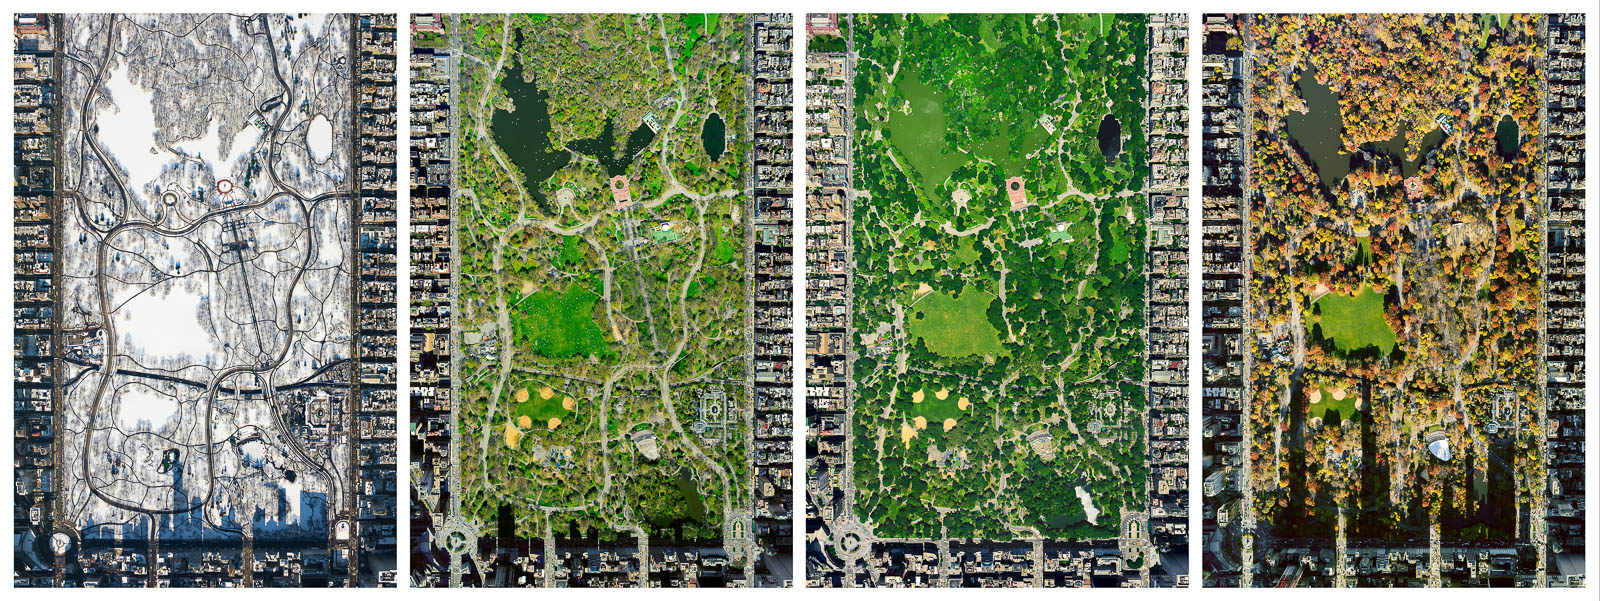 Central Park from 10,000 feet (Set)